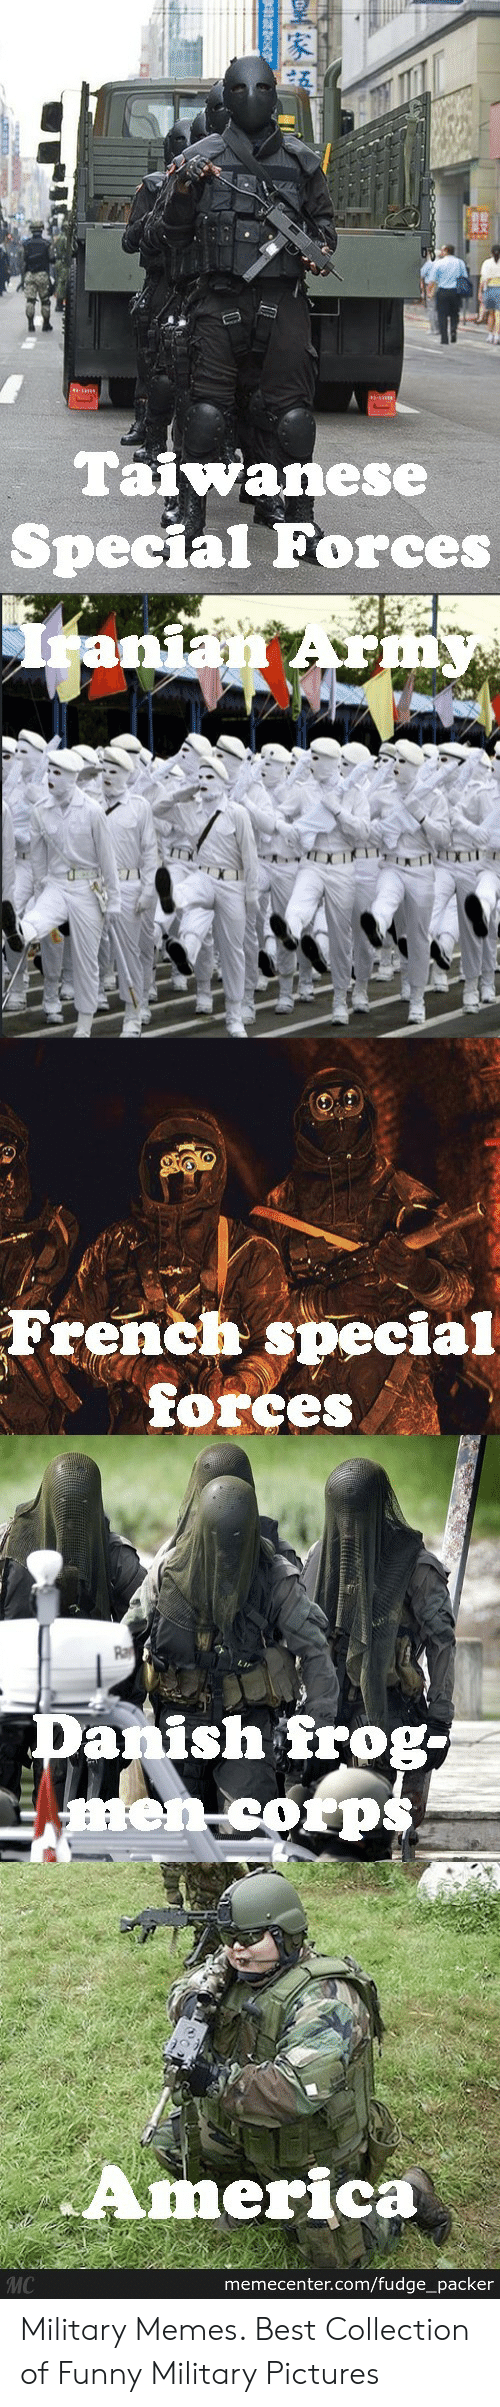 Funny Army Memes: Taiwanese  Special Forces  French special  forces  anish frog-  America  MC  memecenter.com/fudge_packer Military Memes. Best Collection of Funny Military Pictures